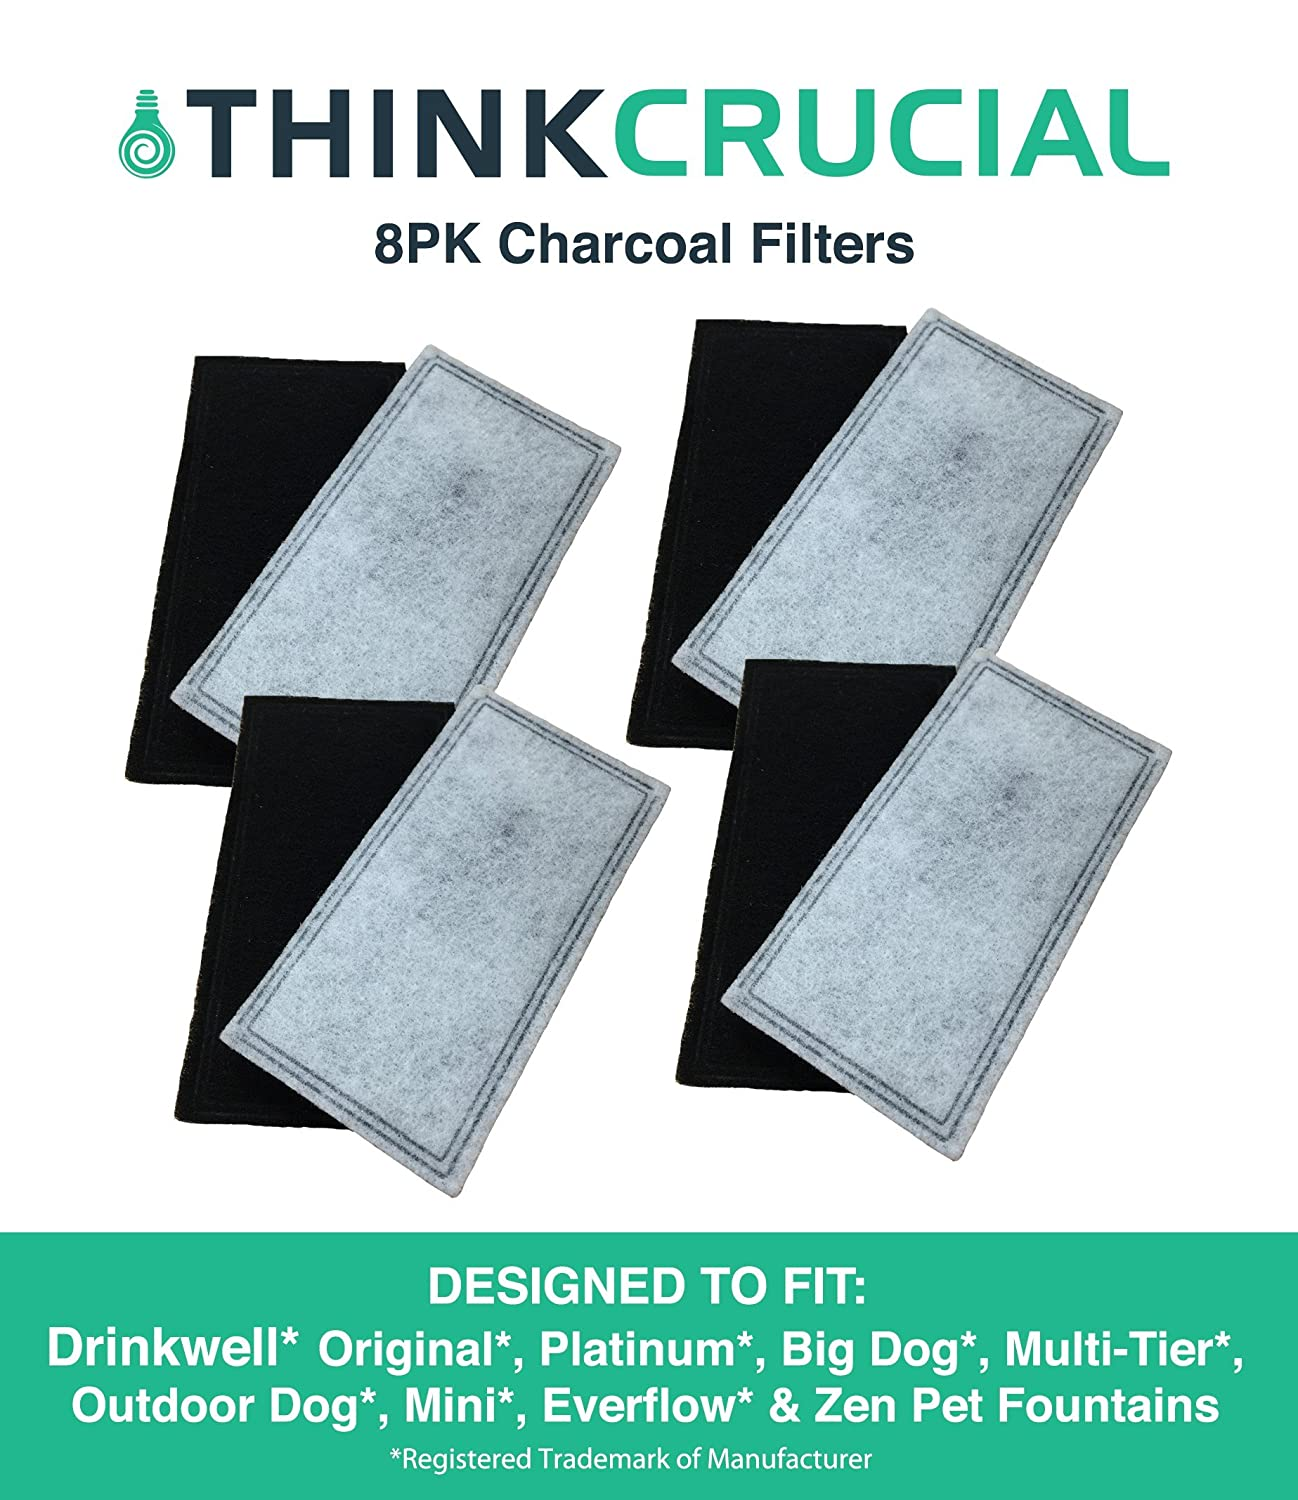 8 Replacements for Drinkwell Two-Chamber Charcoal Filters, Fits Big Dog, Everflow, Mini, Multi-Tier, Original, Outdoor Dog, Platinum, & Zen Fountains, by Think Crucial